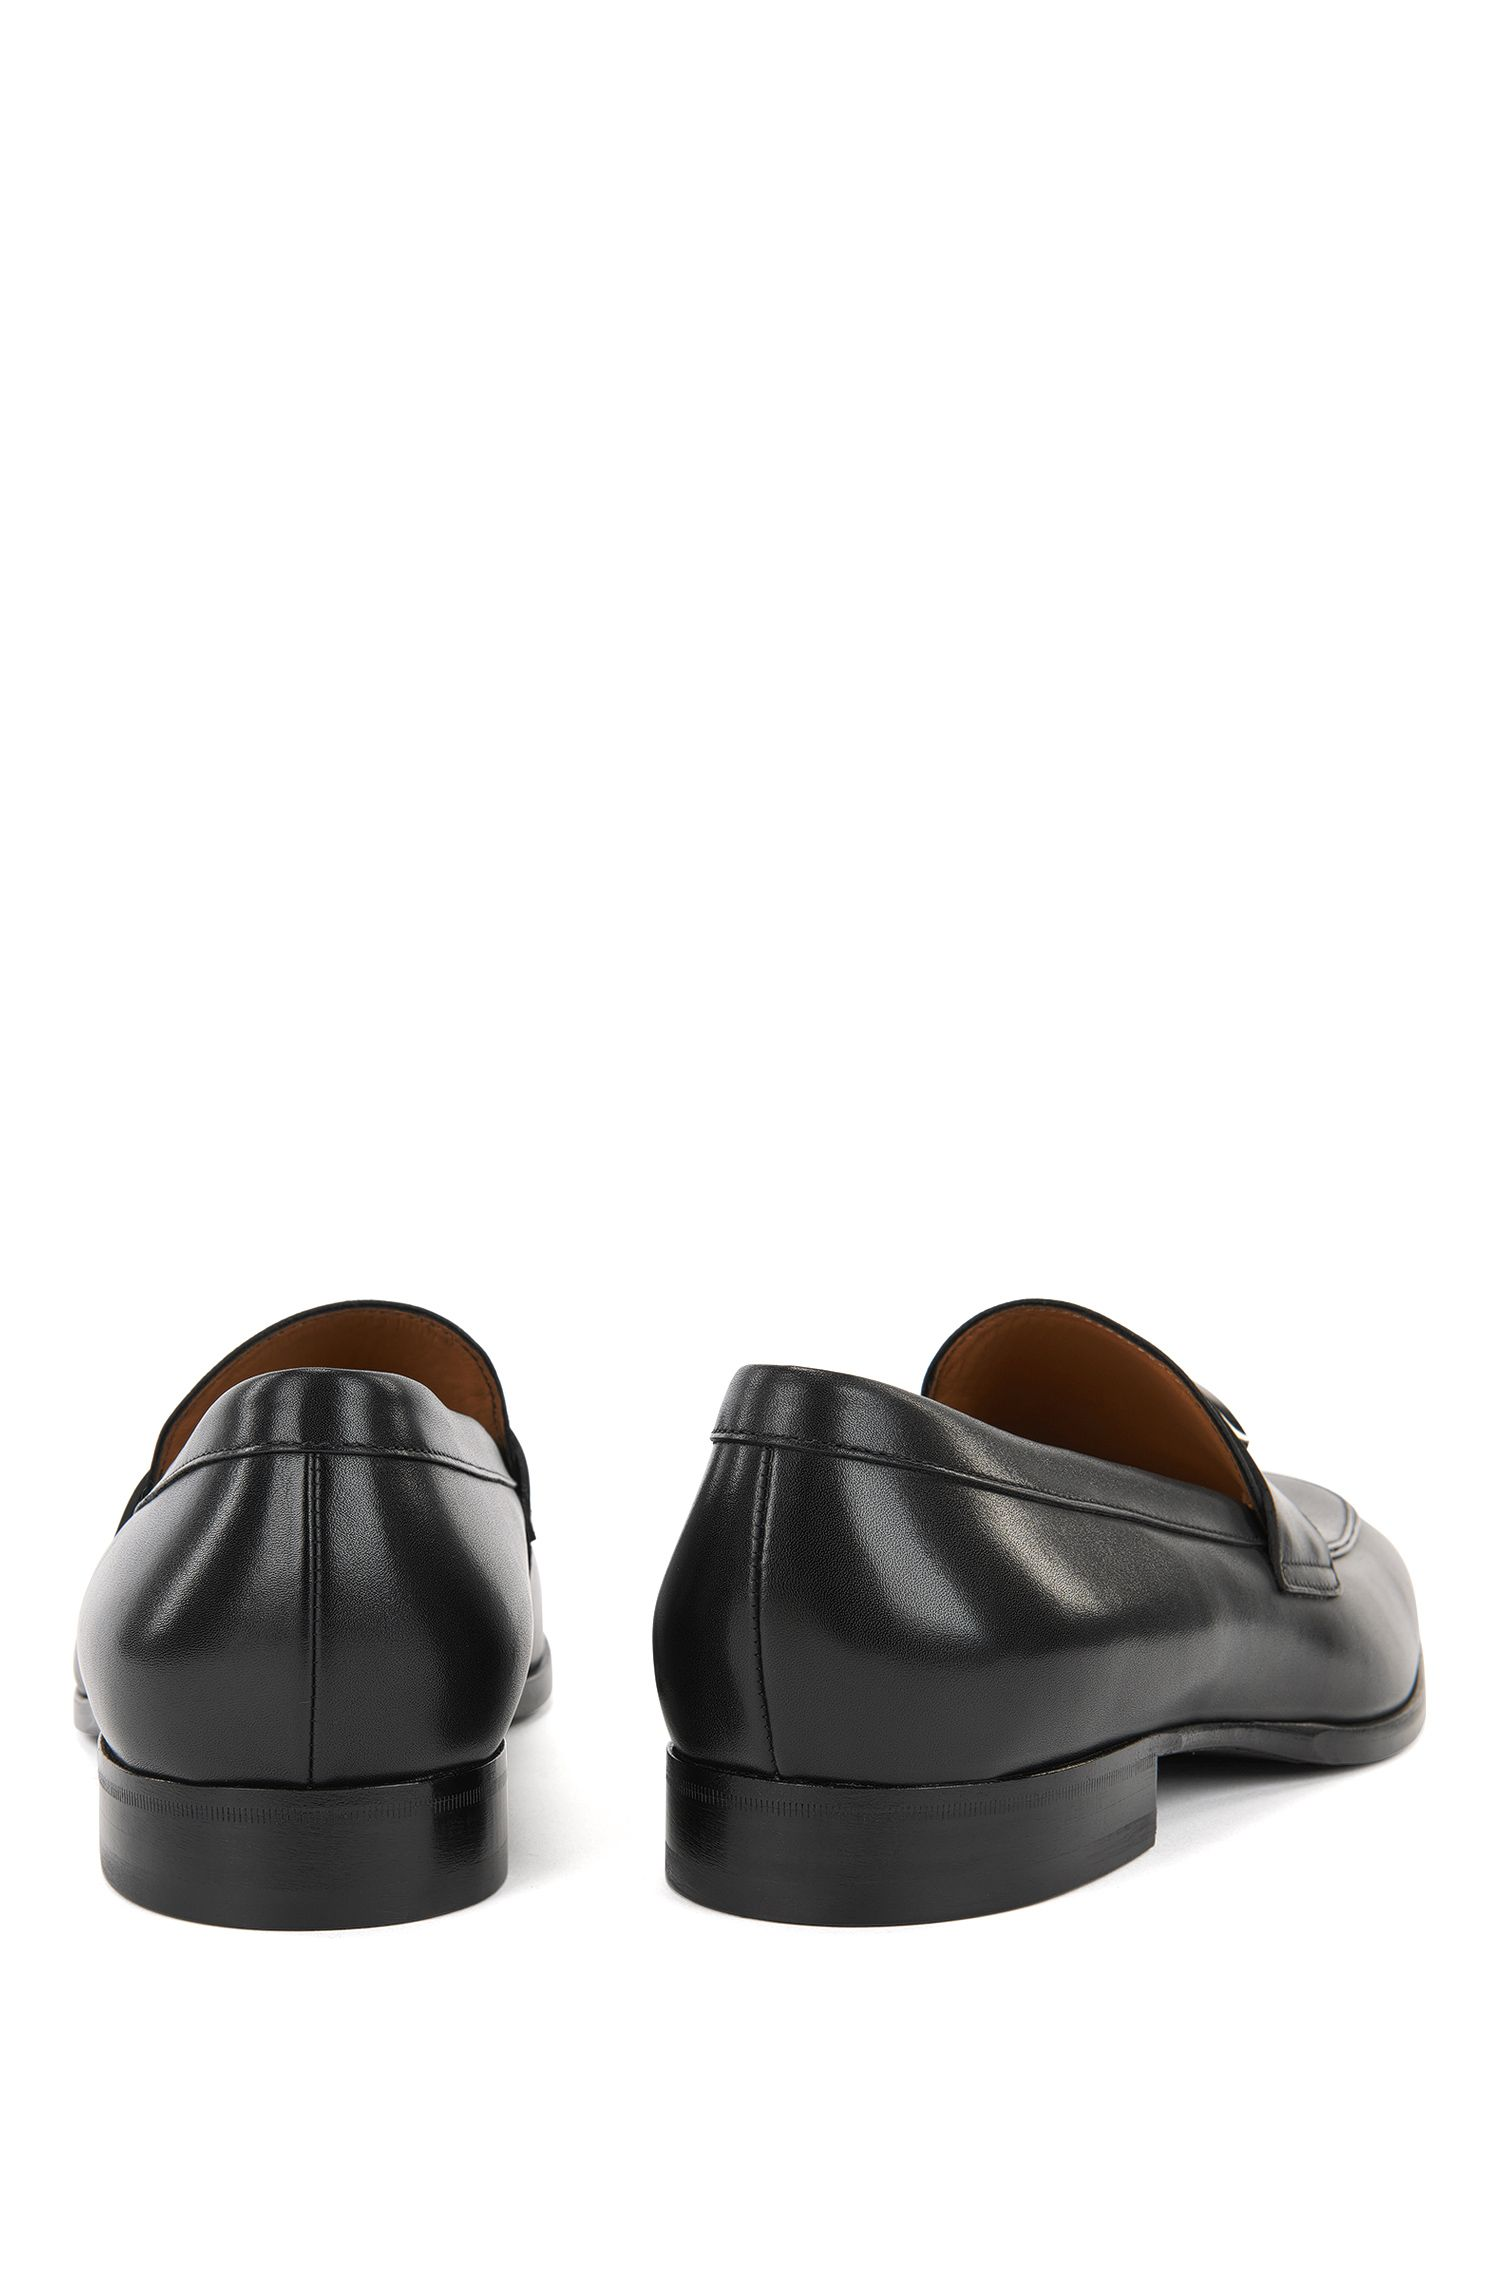 Leather loafers with branded hardware